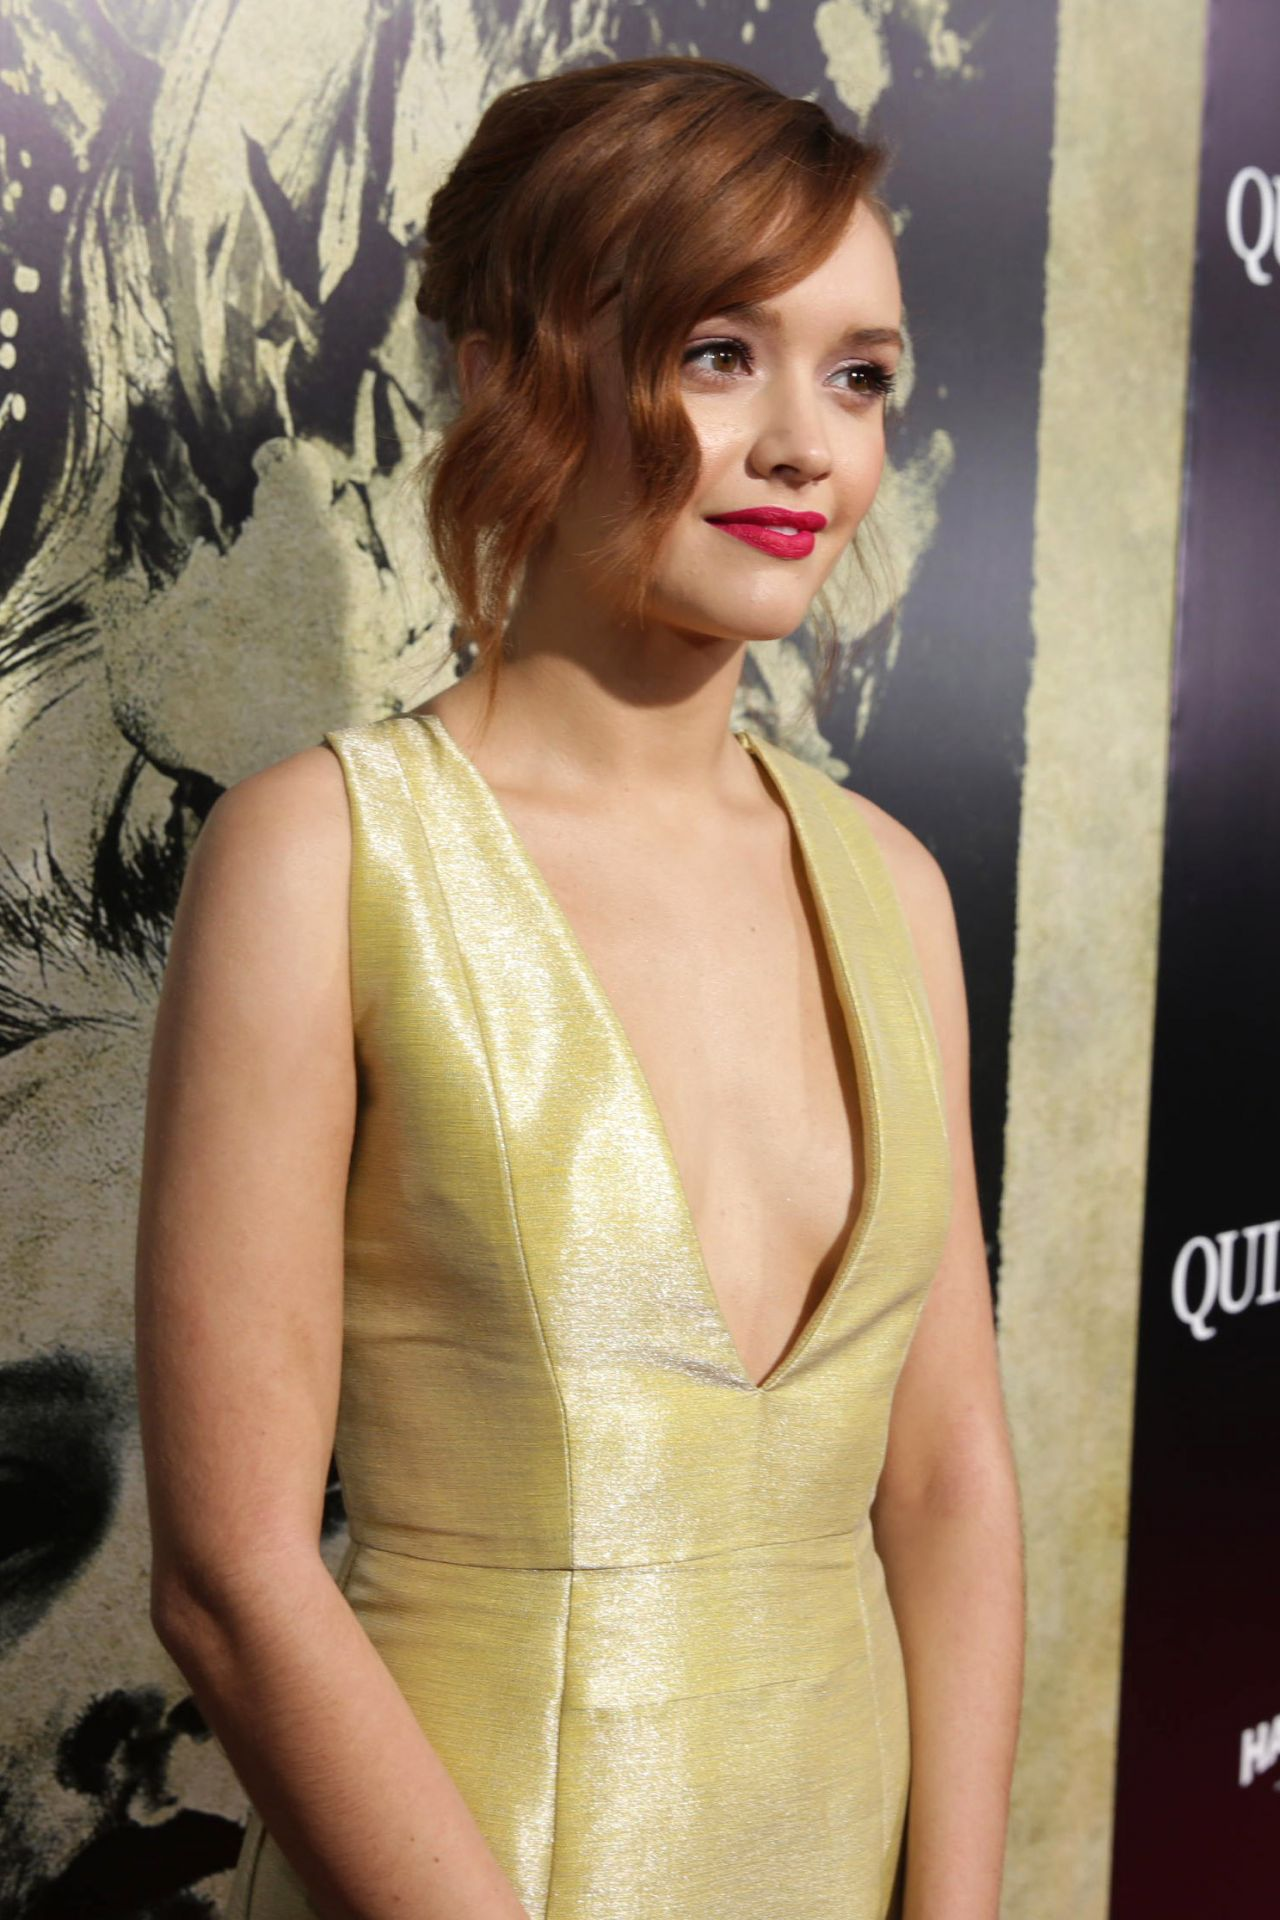 Olivia Cooke - 'The Quiet Ones' Premiere in Los Angeles